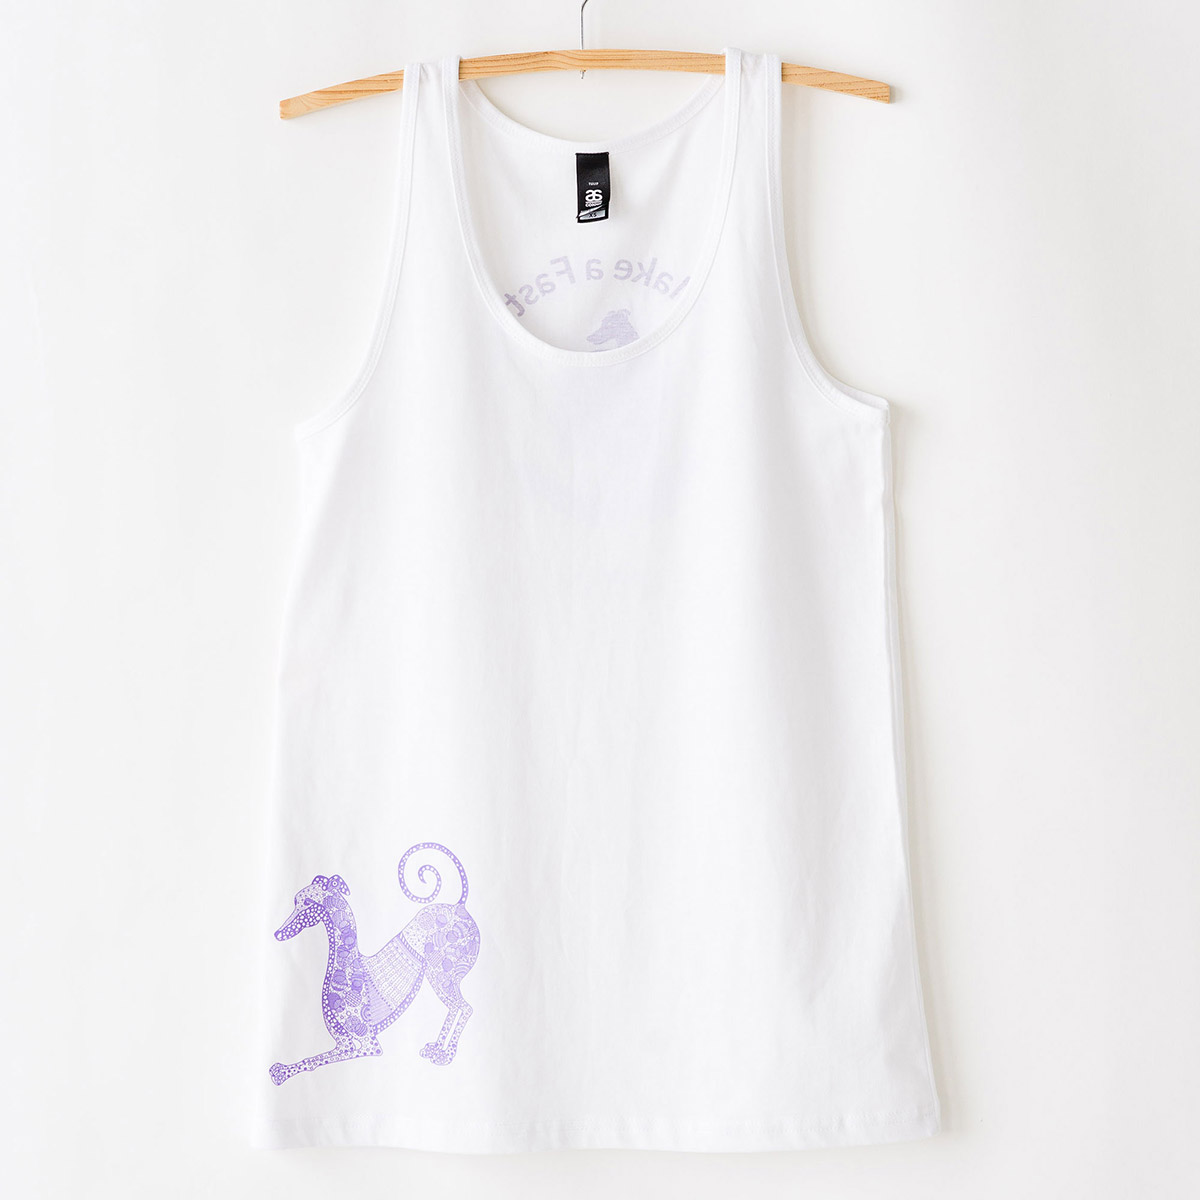 Womens greyhound singlet white